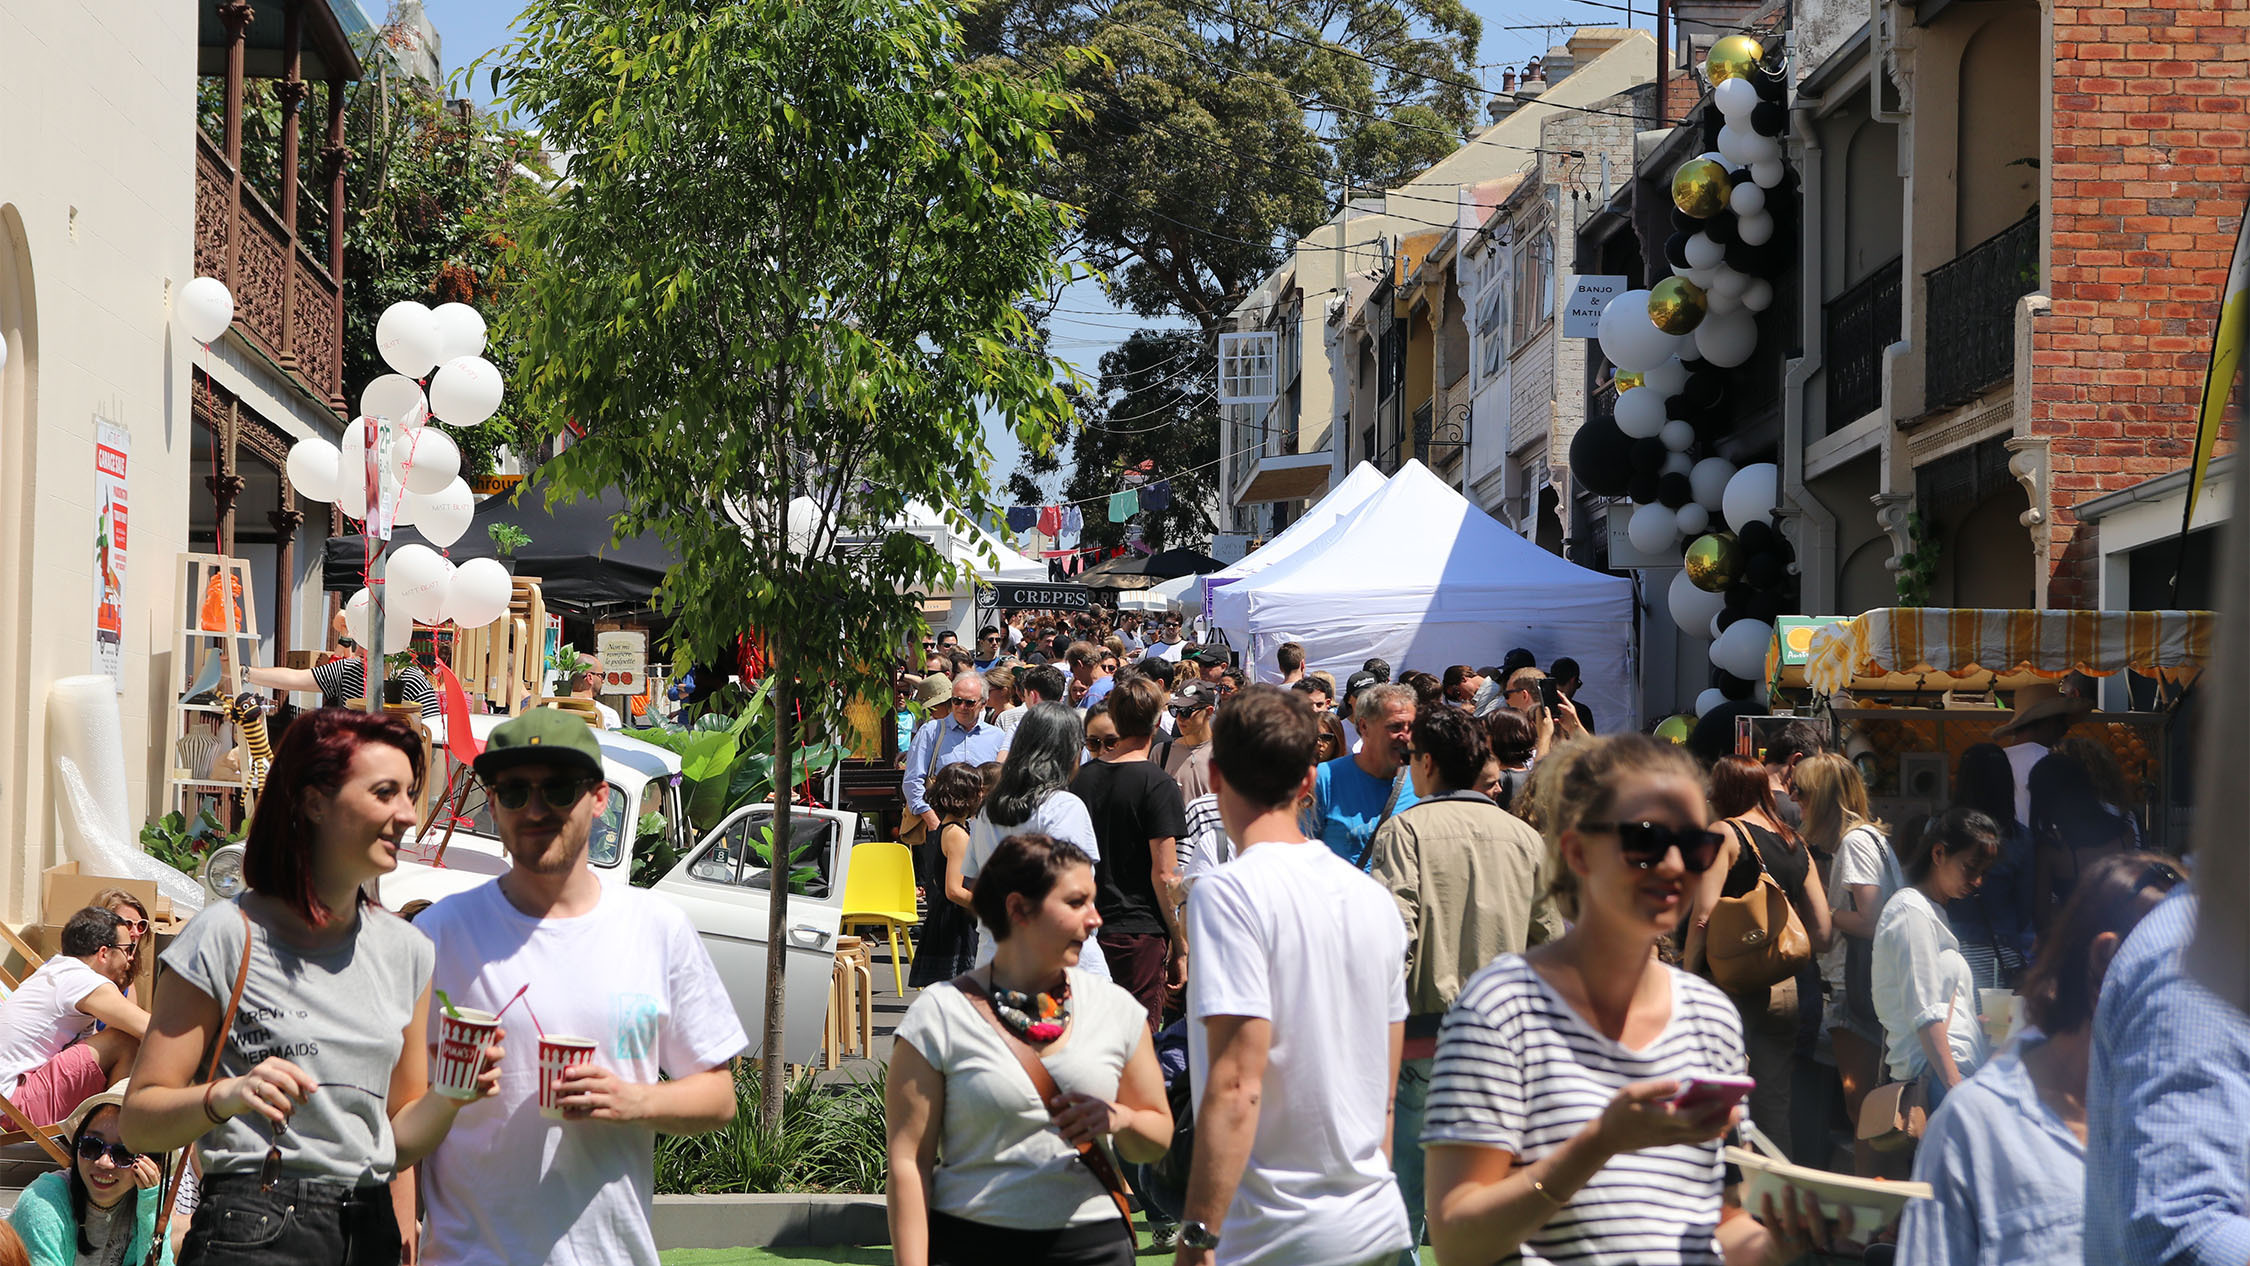 William Street Festival Paddington overview